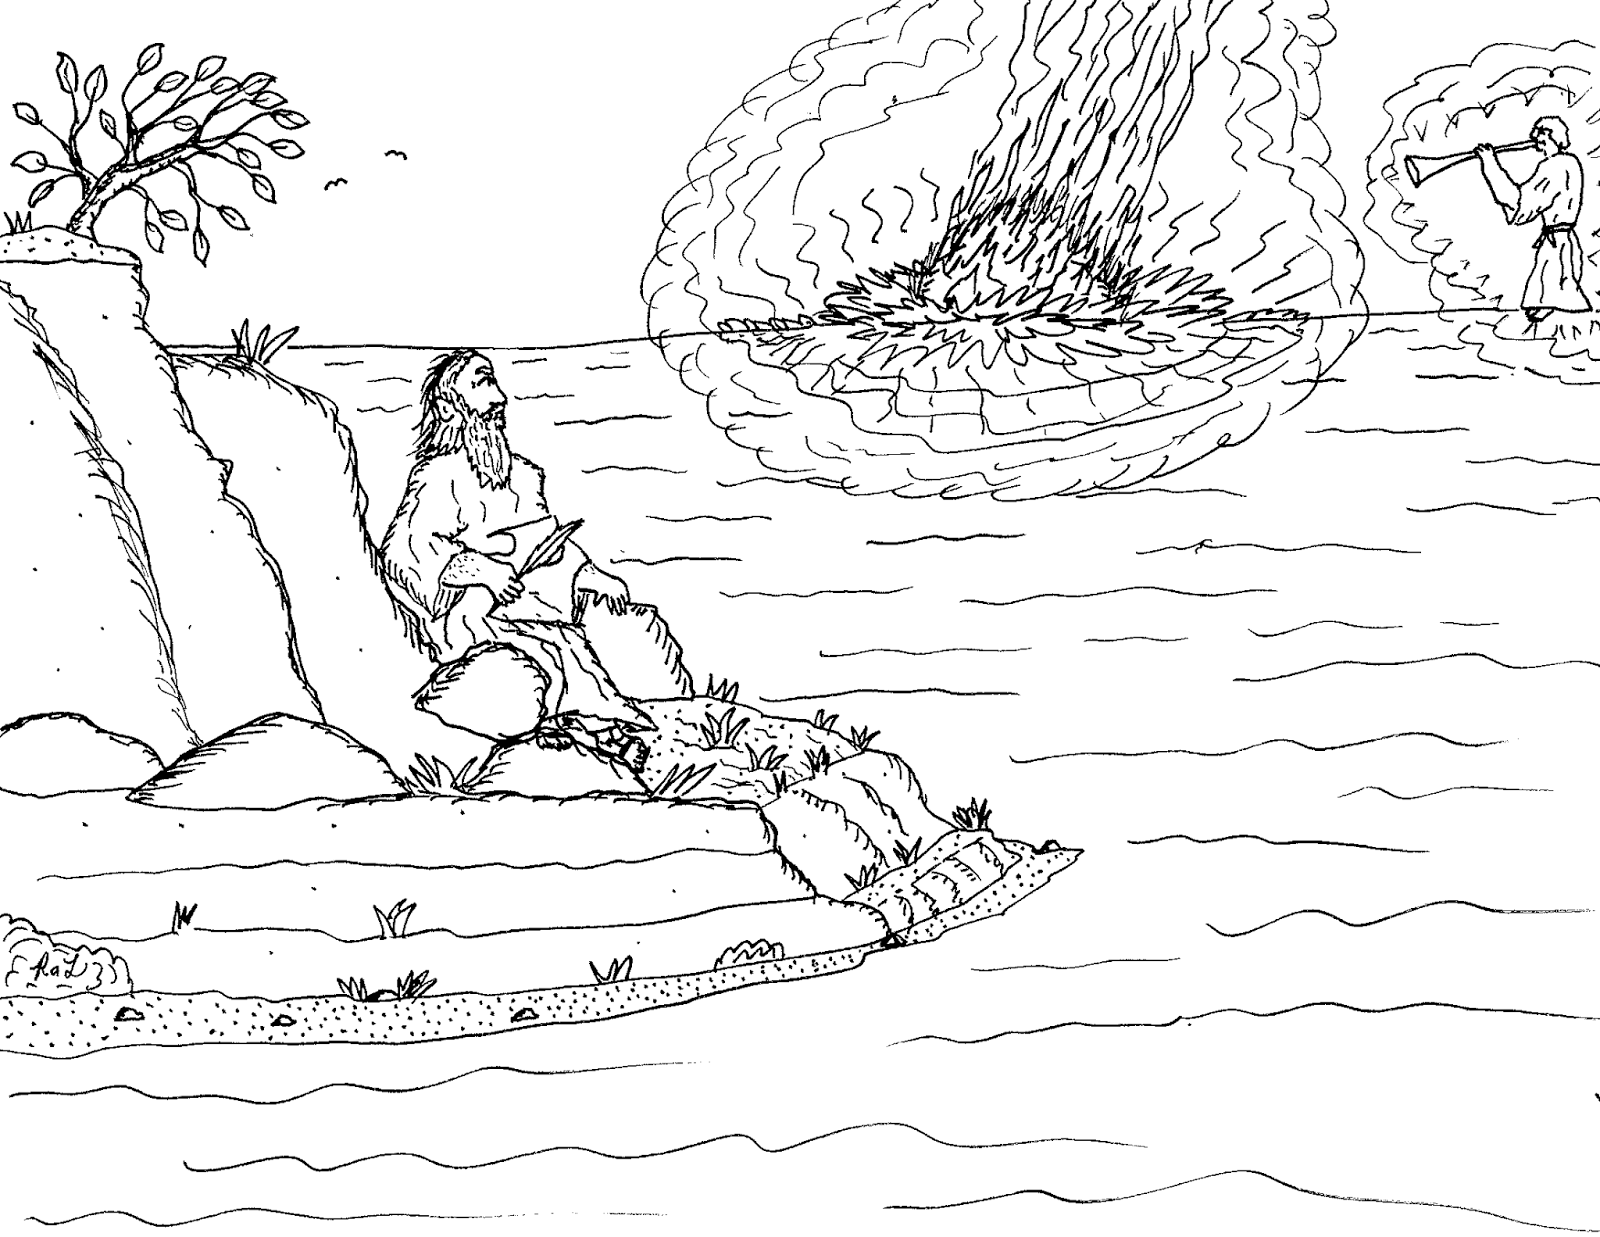 Robin's Great Coloring Pages: The Three Nephites